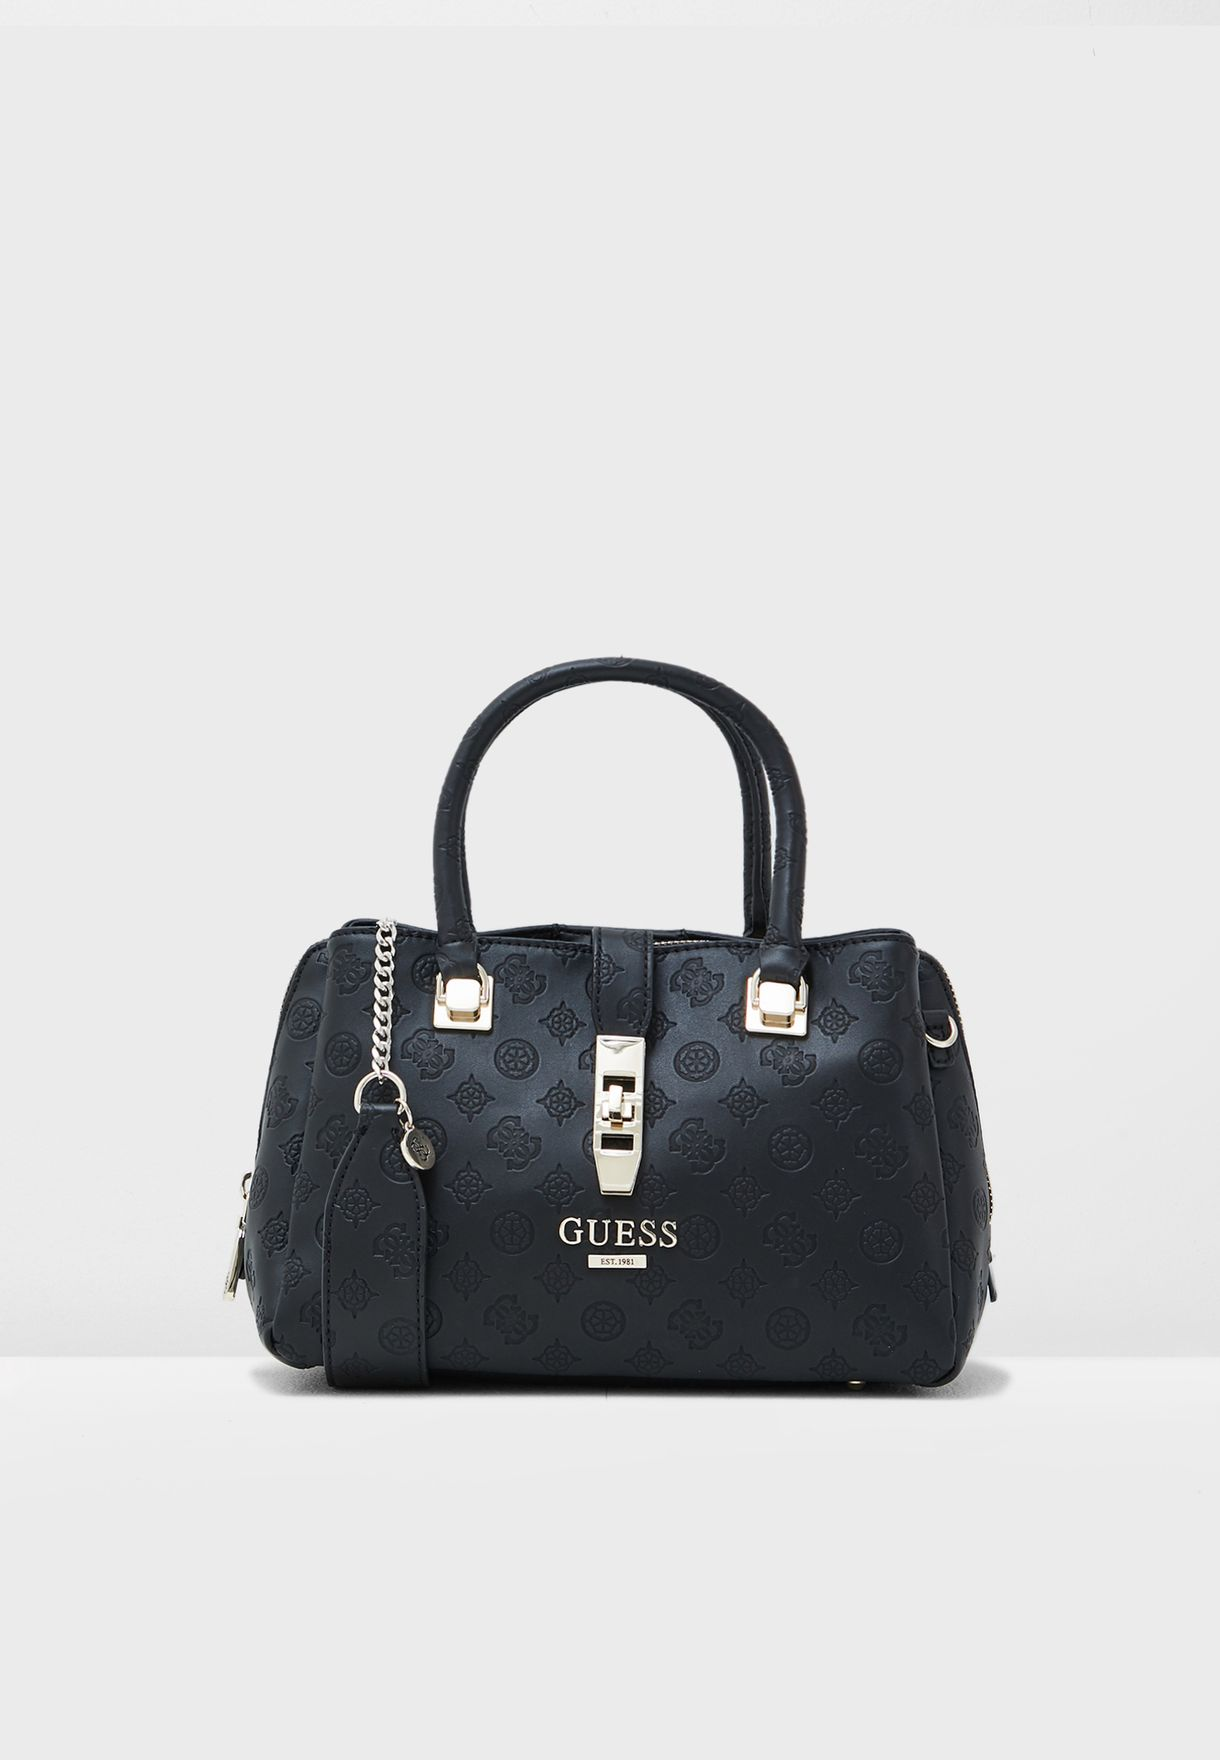 430290fa71 Shop Guess black Peony Classic Satchel SG739806 for Women in UAE ...